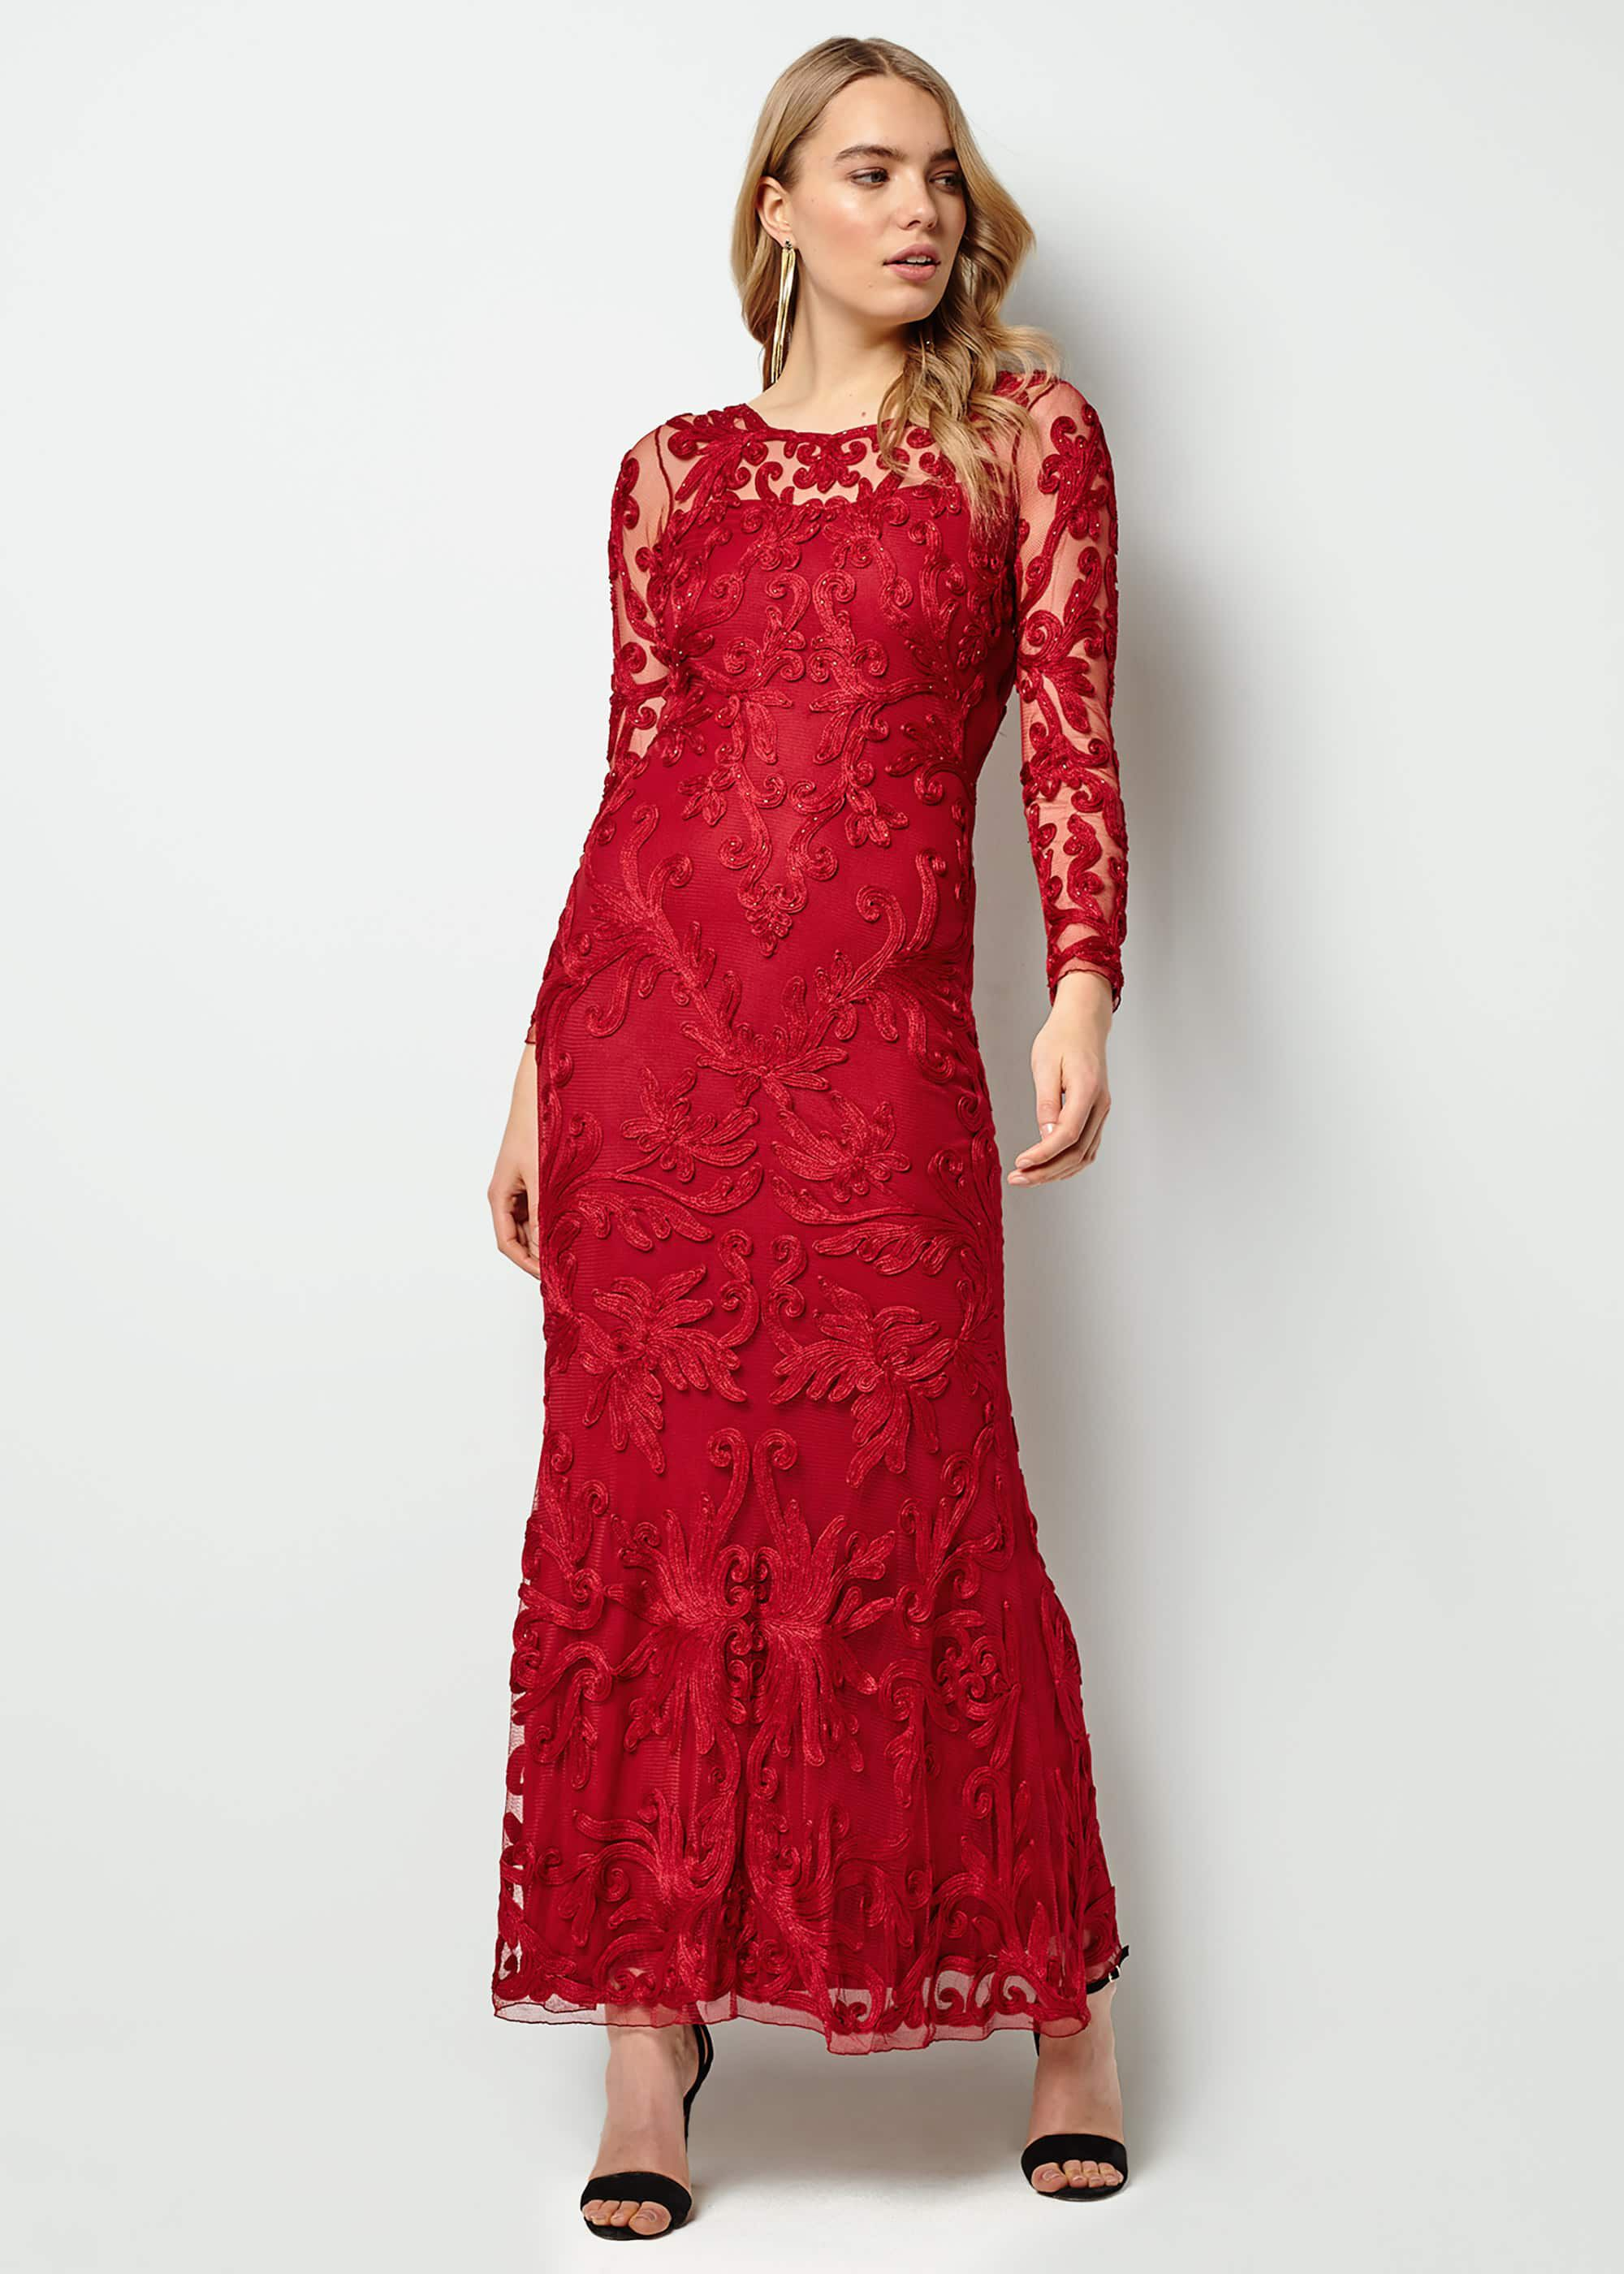 Phase Eight Aubree Tapework Lace Maxi Dress, Red, Maxi